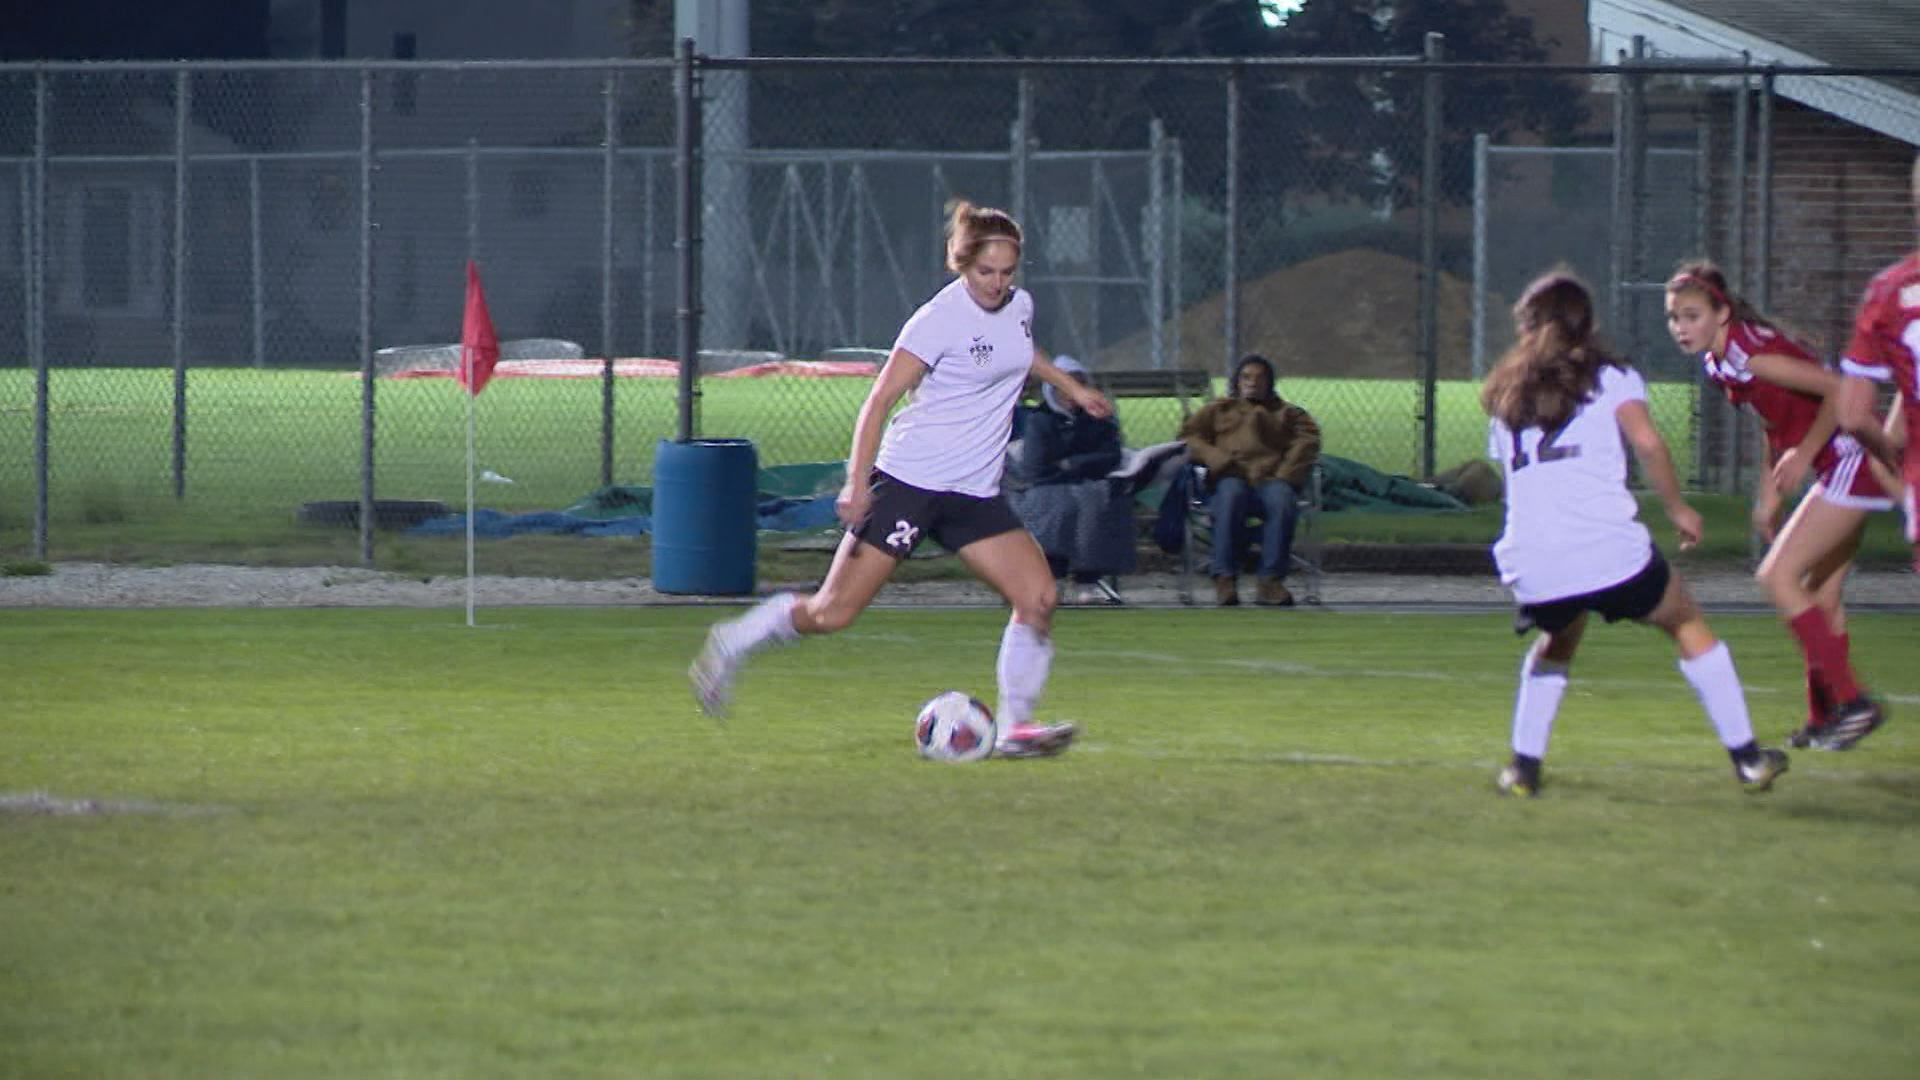 Kristina Lynch, the senior forward has paced Penn in scoring with 44 goals this season // WSBT 22 Photo